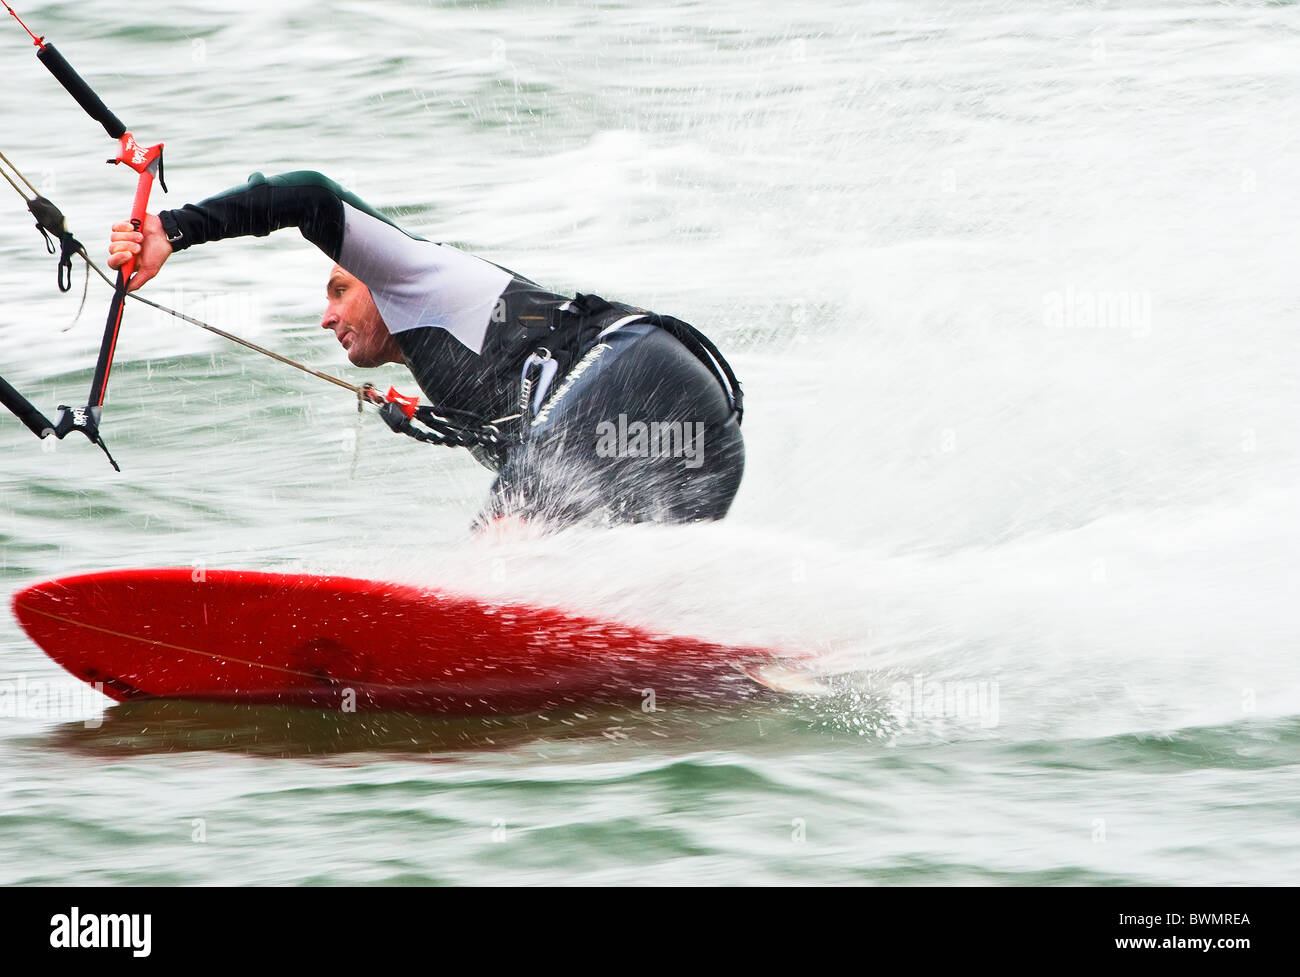 Kitesurfing on the river Exe estuary, Exmouth, Devon, England, UK - Stock Image